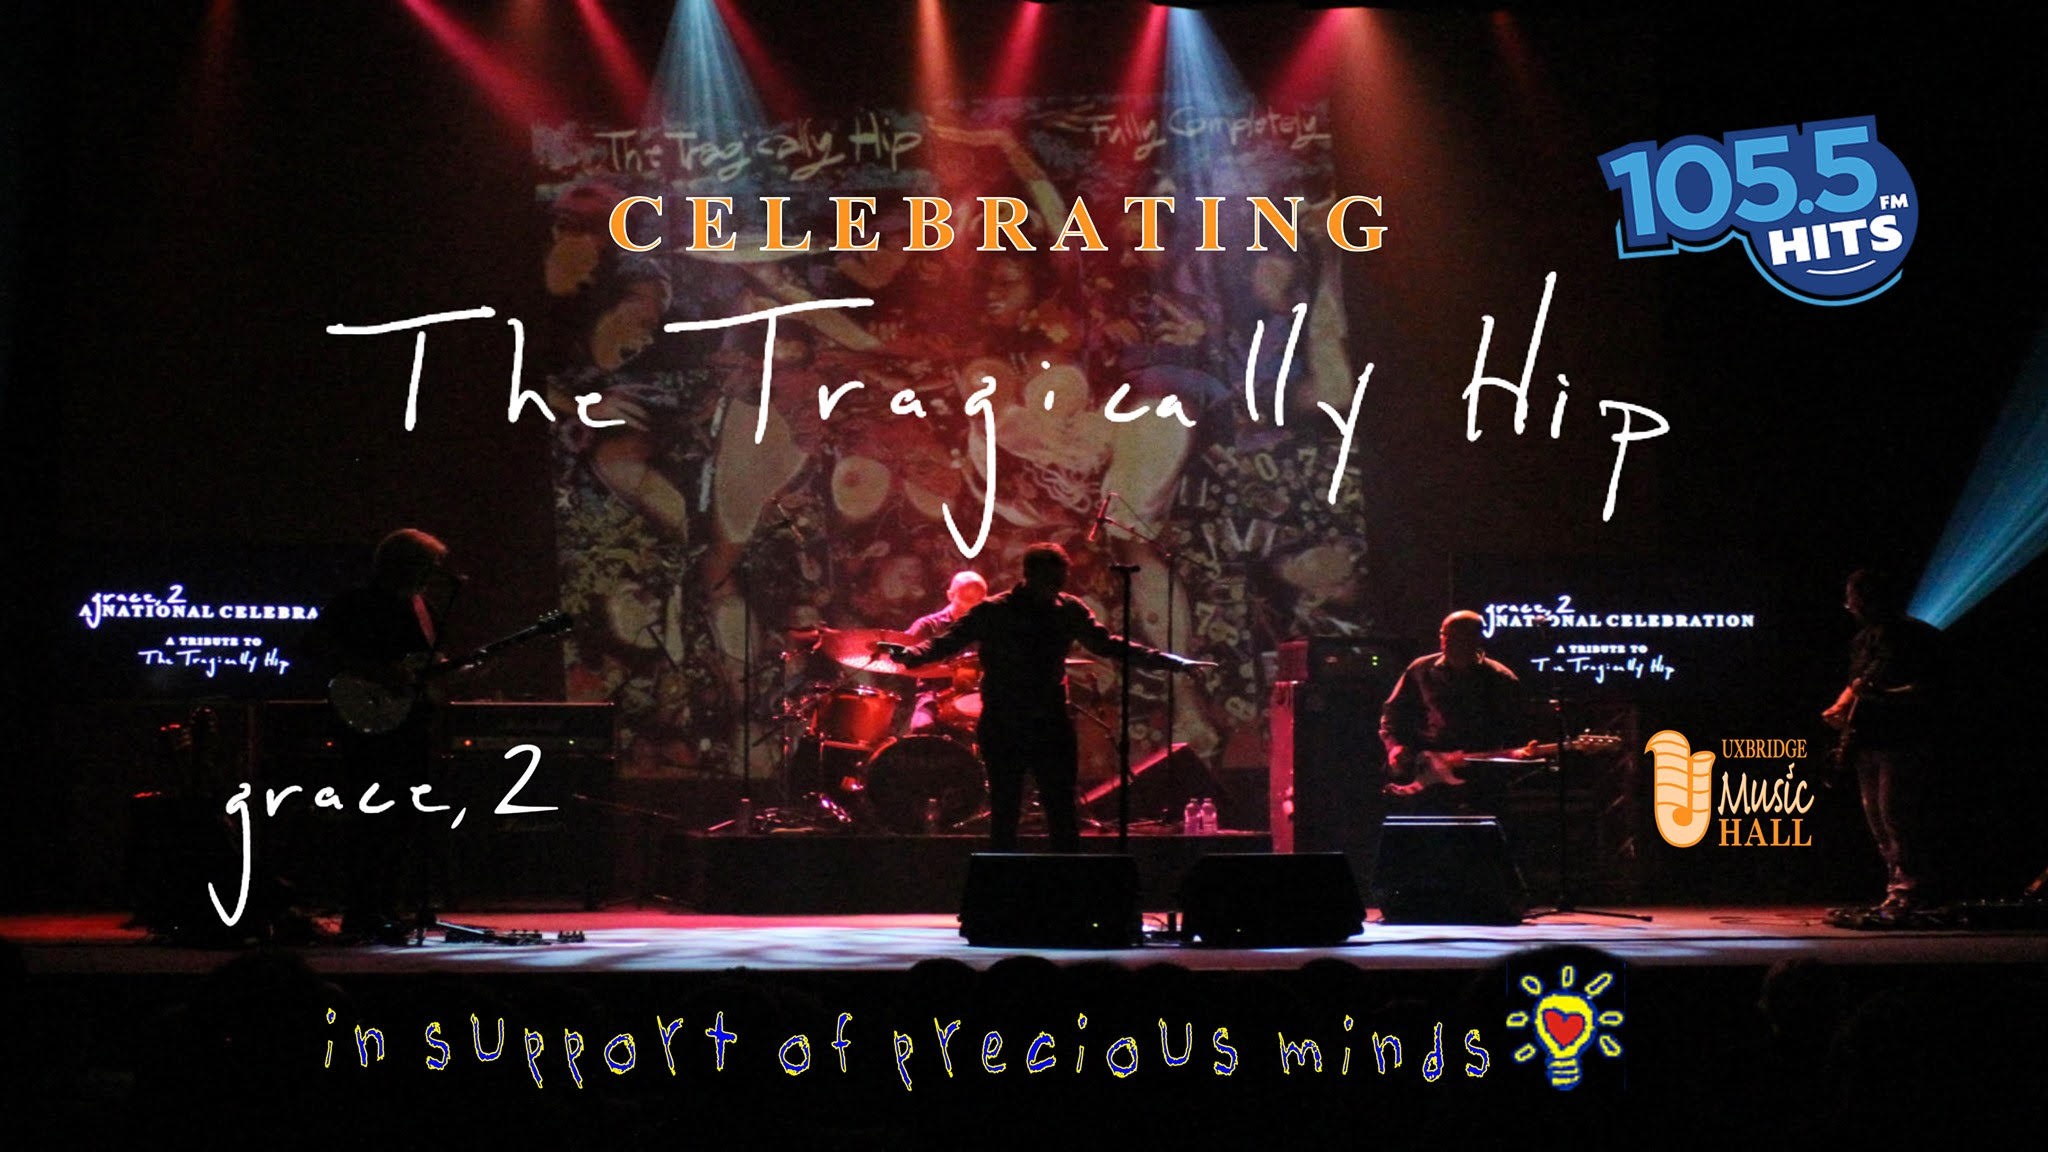 Grace, 2 - Celebrating the Tragically Hip - March 7